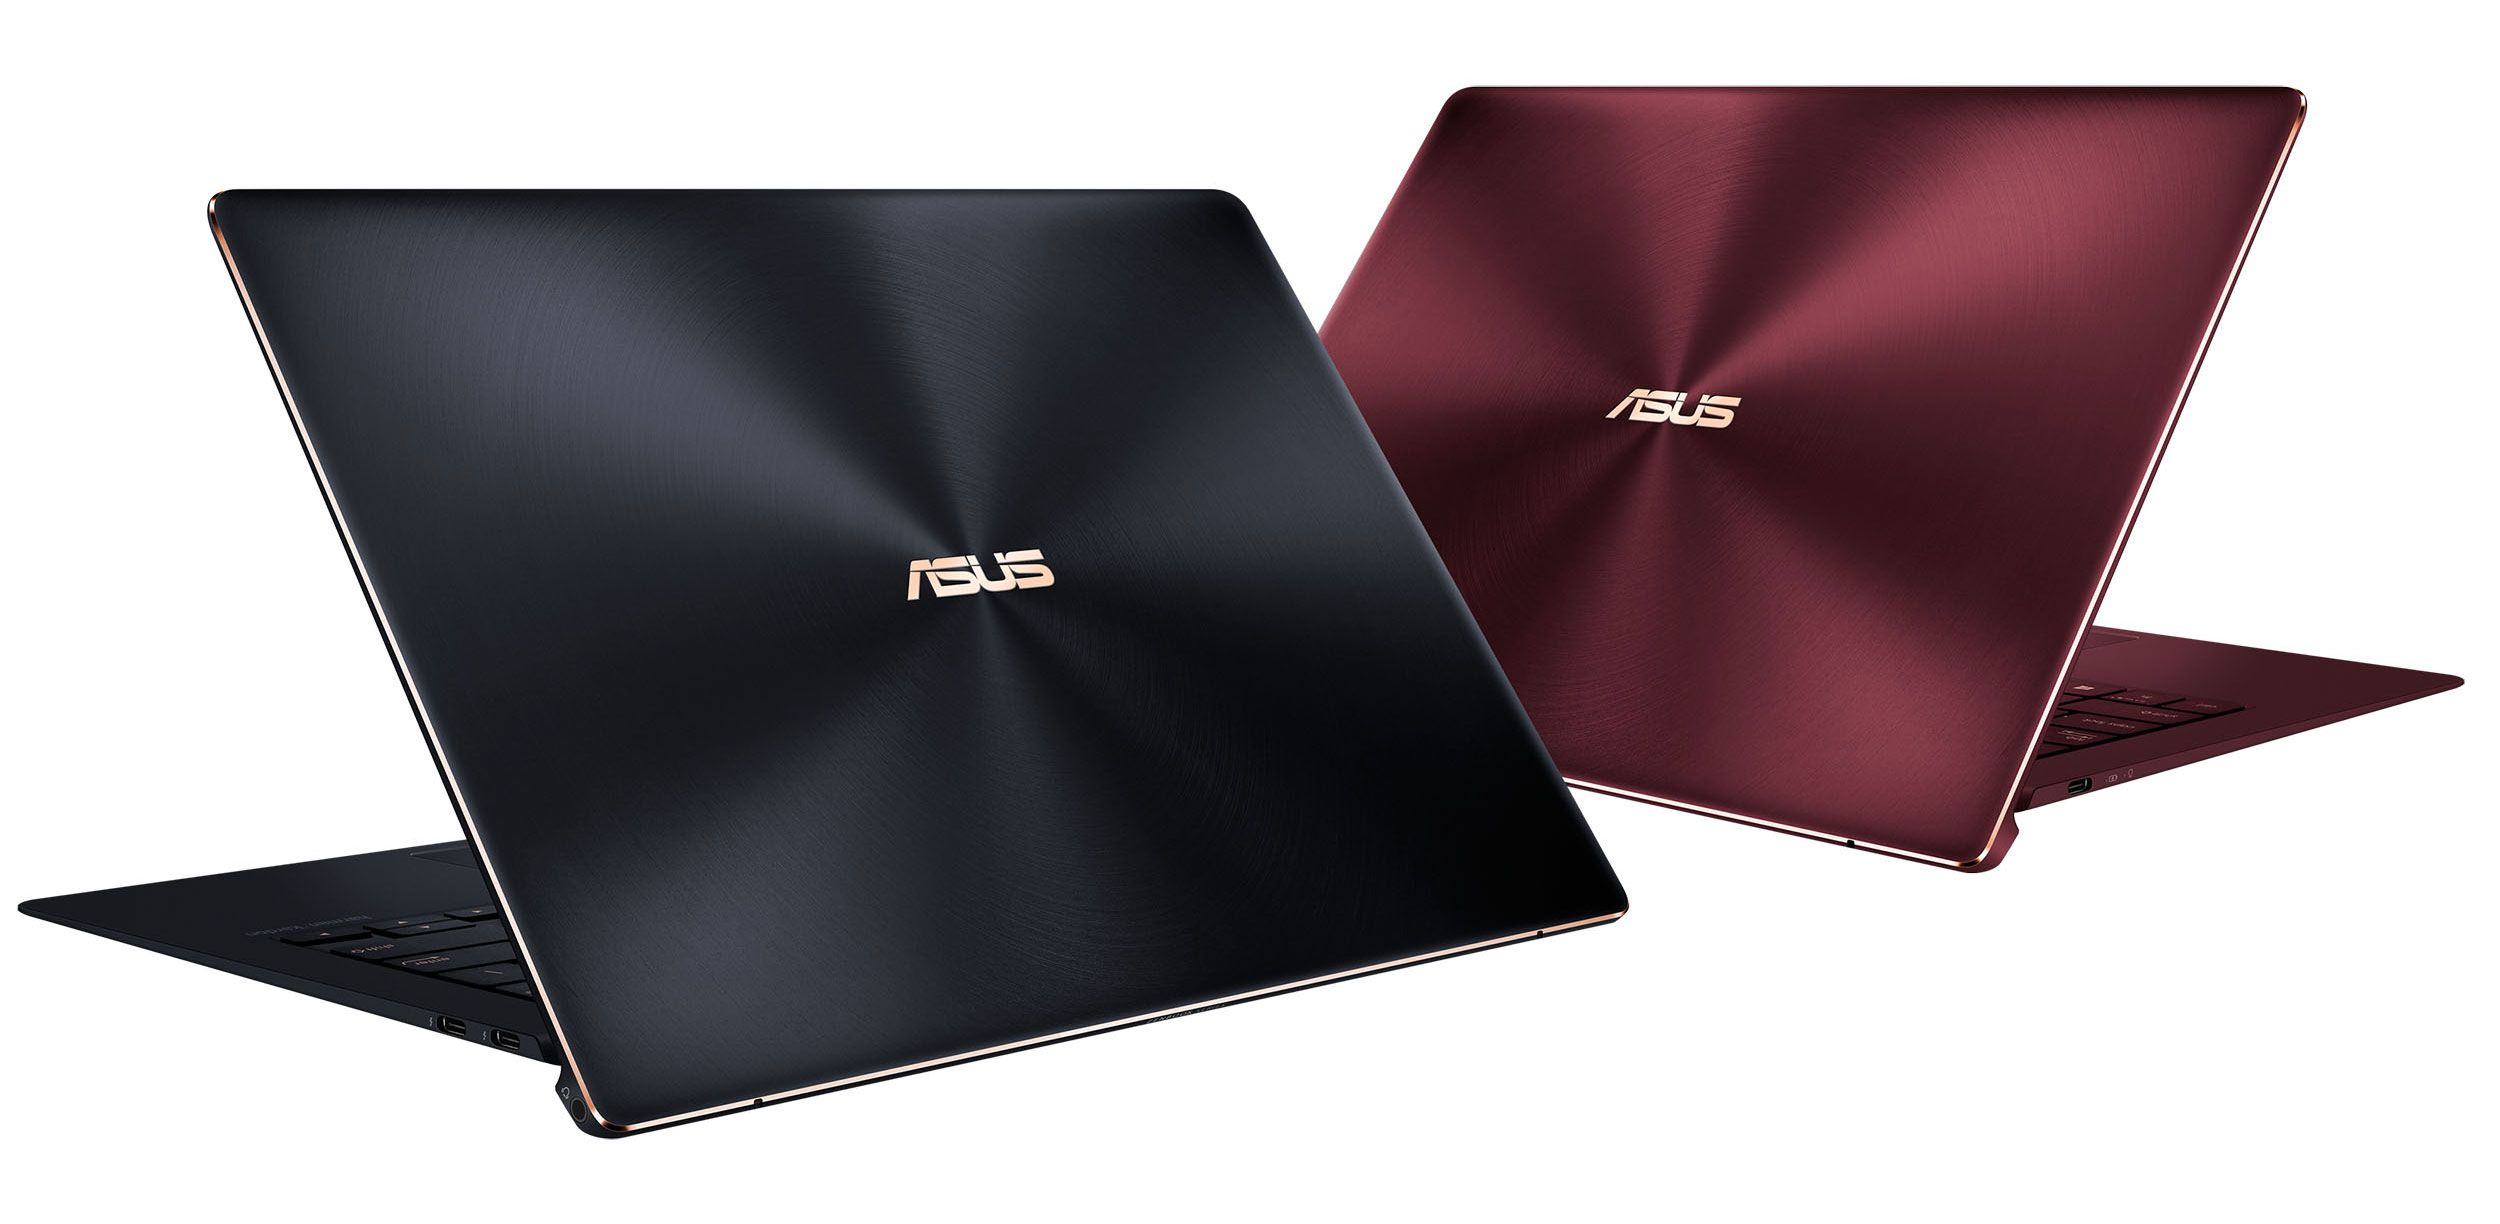 2018 Asus Zenbooks Ux333 Ux433 Ux533 And Zenbook Flips Ux362 Ux562 What To Expect Asus Flipping Expectations